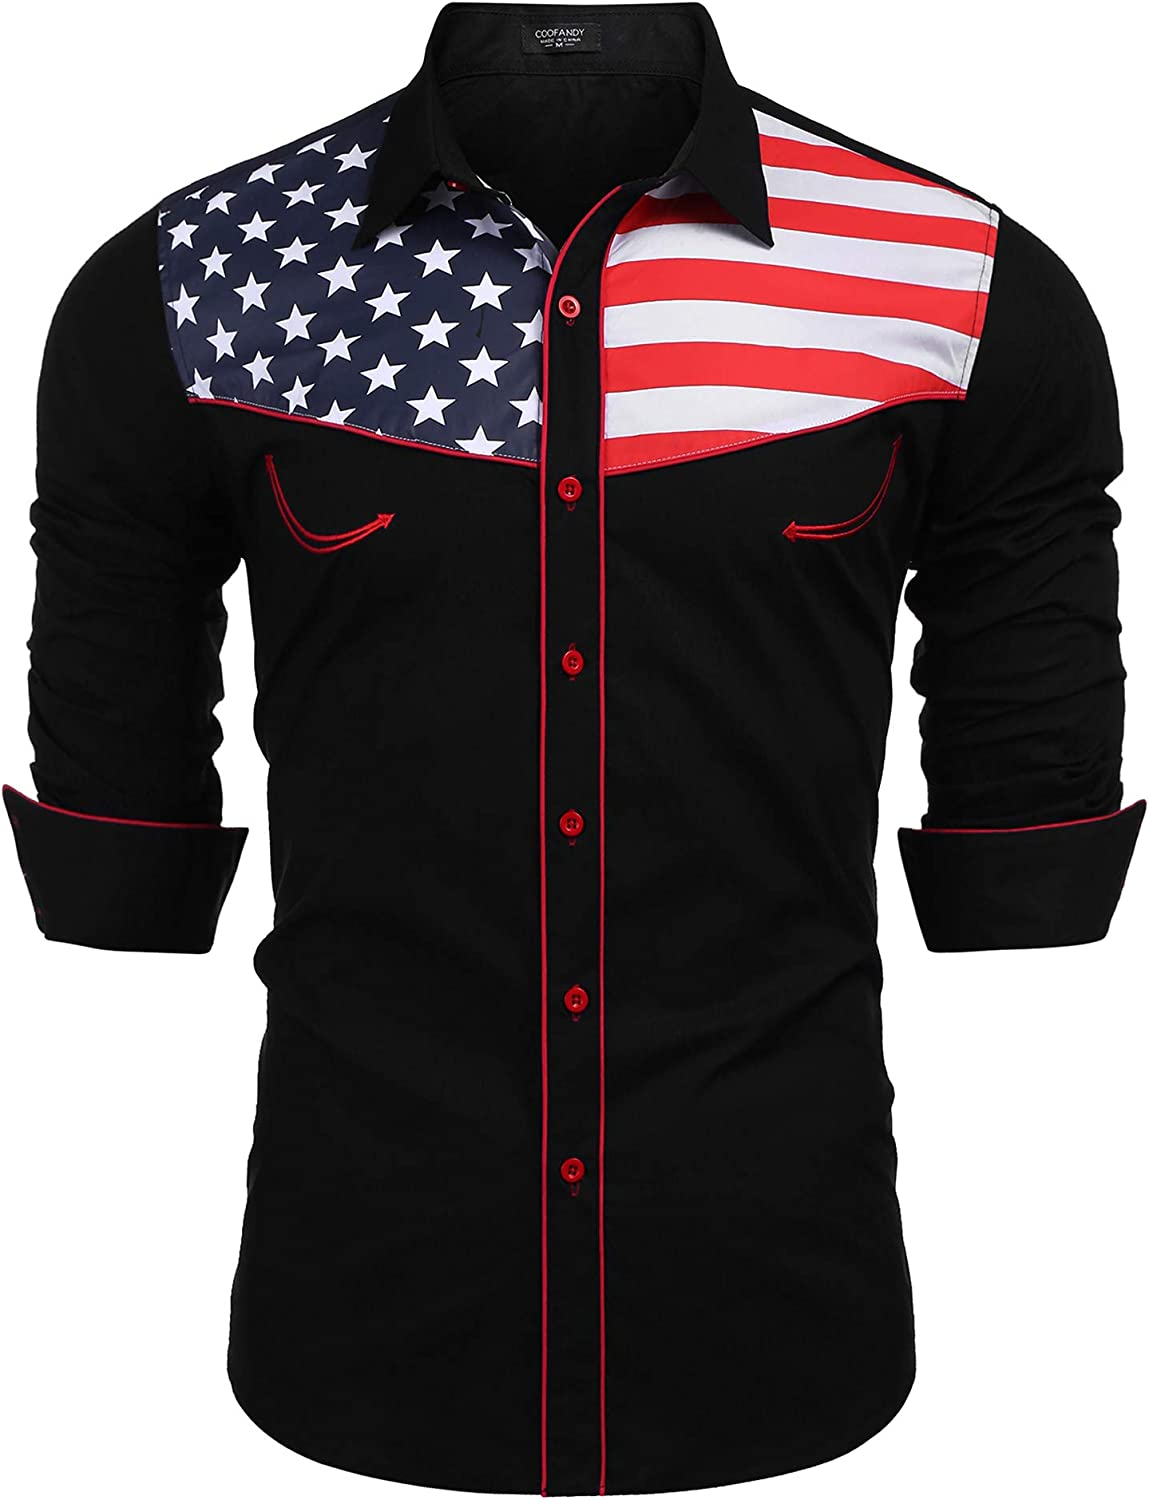 Flagshirt Mens Half Stars Half Stripes American Flag Shirt Button-Up White /& Blue, Red